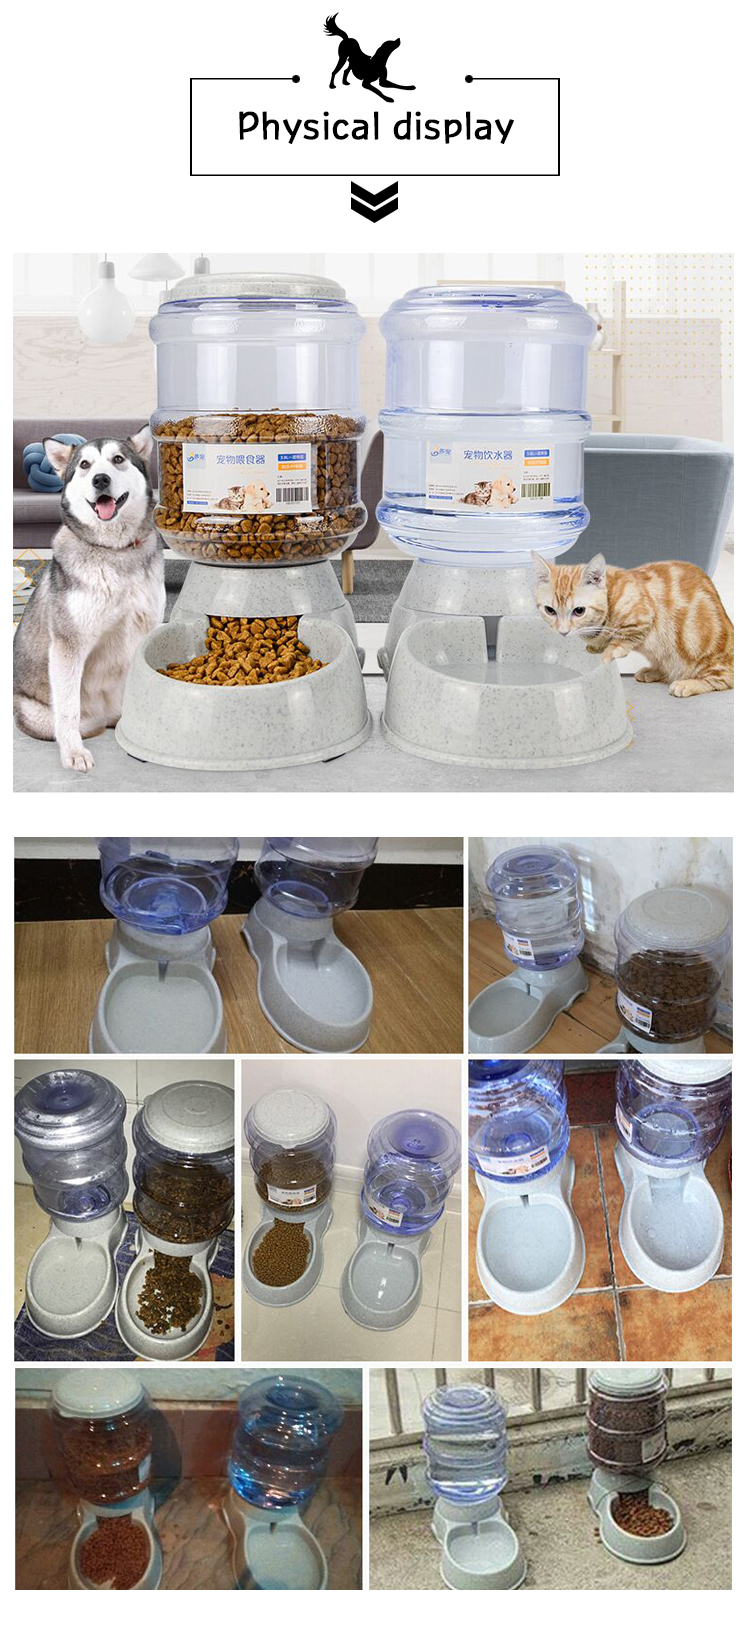 Automatic Dog Food Bowl water & food feeder, consistent supply of fresh food & water; ideal for cats & dogs | DogsMall-International